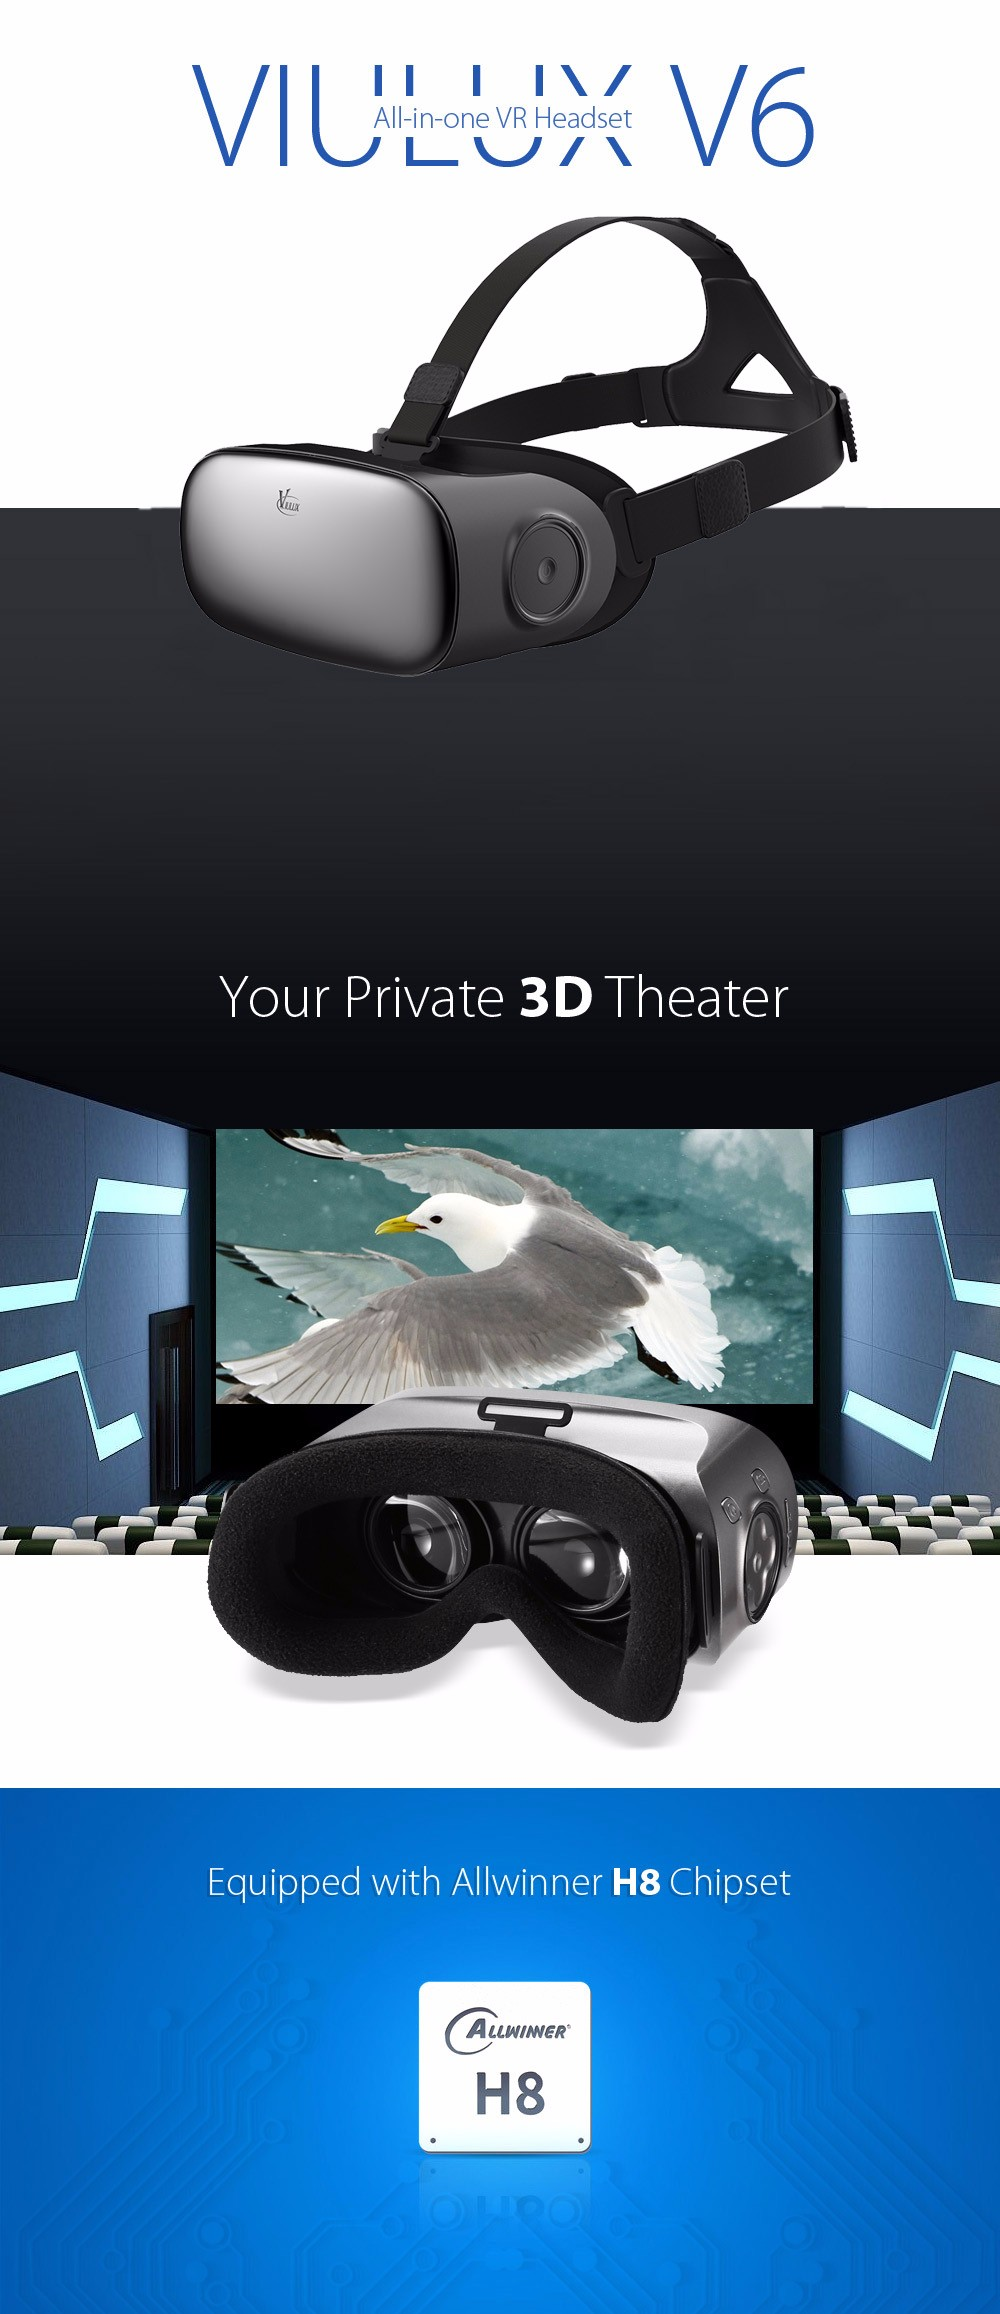 Original VIULUX V6 All-in-one VR 3D Headset Bluetooth WiFi 110 Degree FOV IPD Adjustment 5.5 inch Display Allwinner H8 Chipset